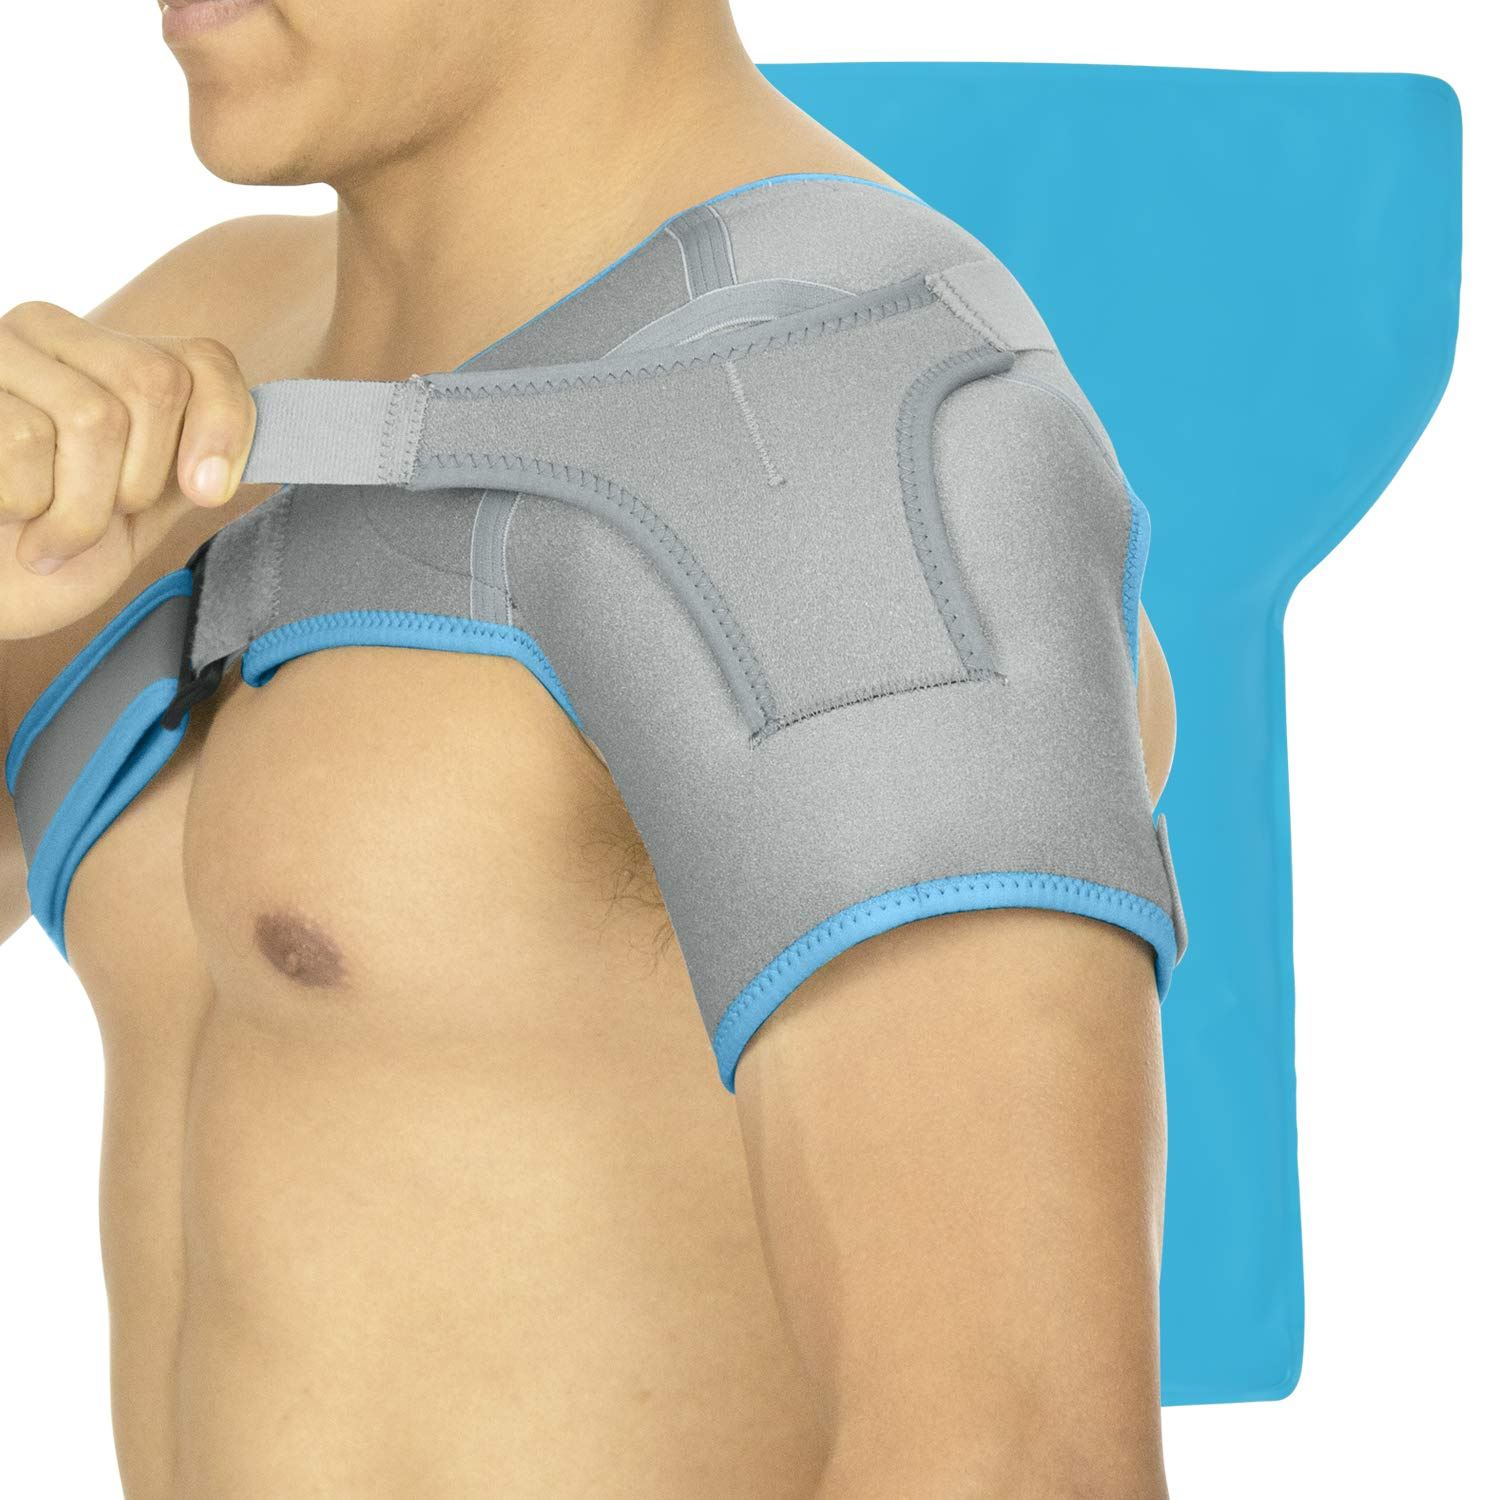 Arctic Flex Shoulder Ice Pack Brace - Cold Reusable Cool Gel Wrap, Hot Therapy - Immobilizer Compression Stability Support for Tendonitis, Dislocated Joint, Left and Right Rotator Cuff Arm Pain Relief by Arctic Flex